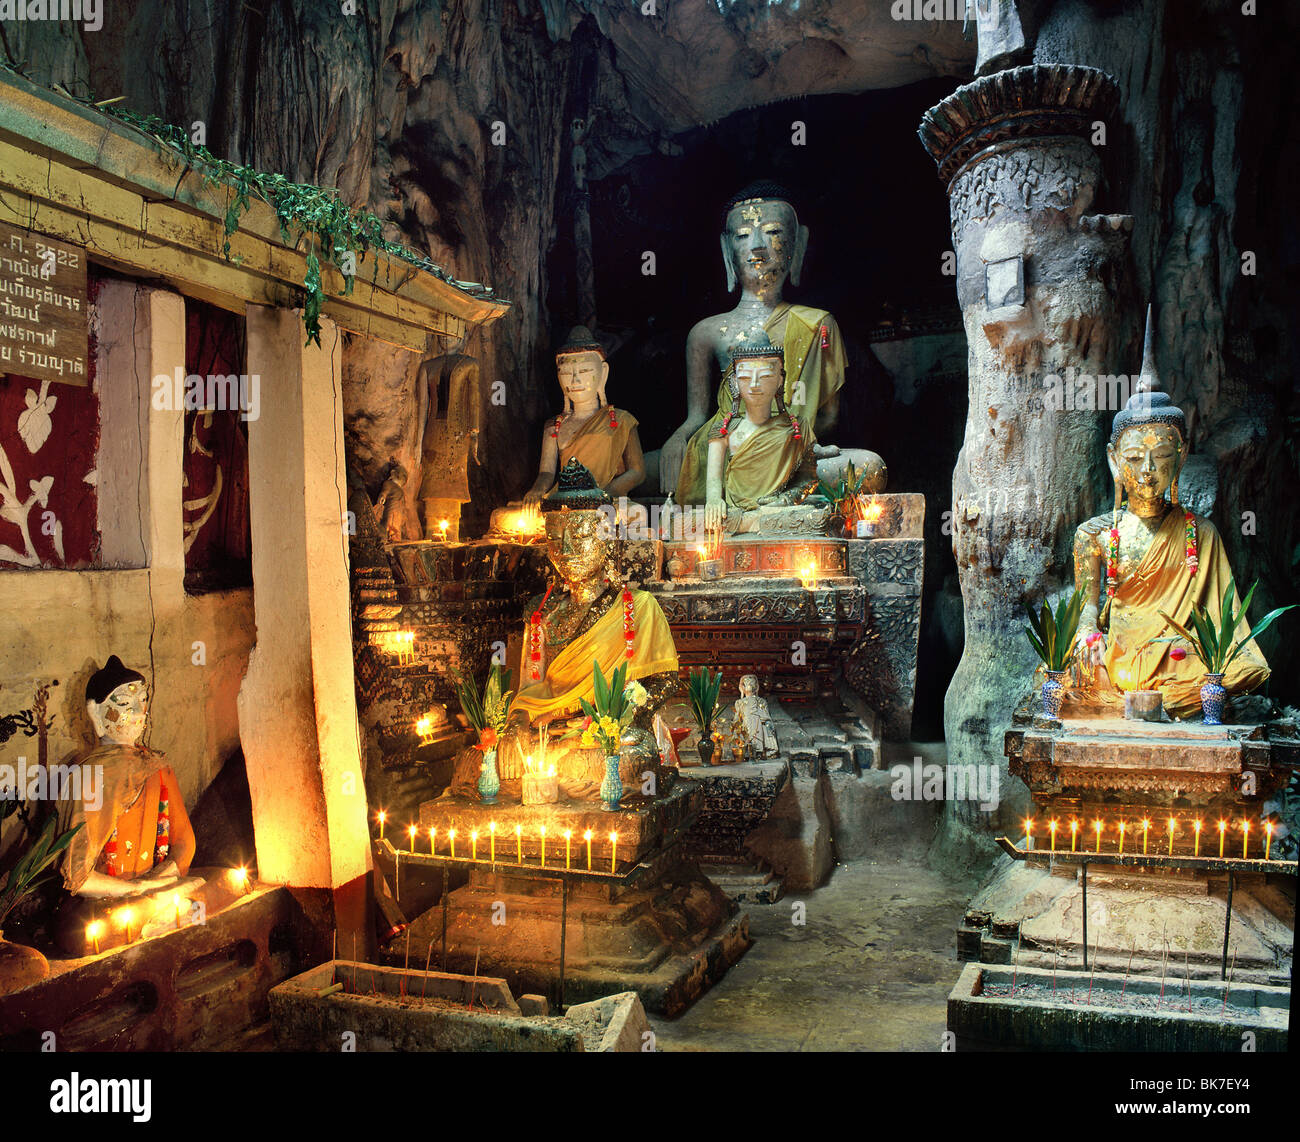 Chiang Dao Cave in Chiang Mai province, Thailand, Southeast Asia, Asia - Stock Image